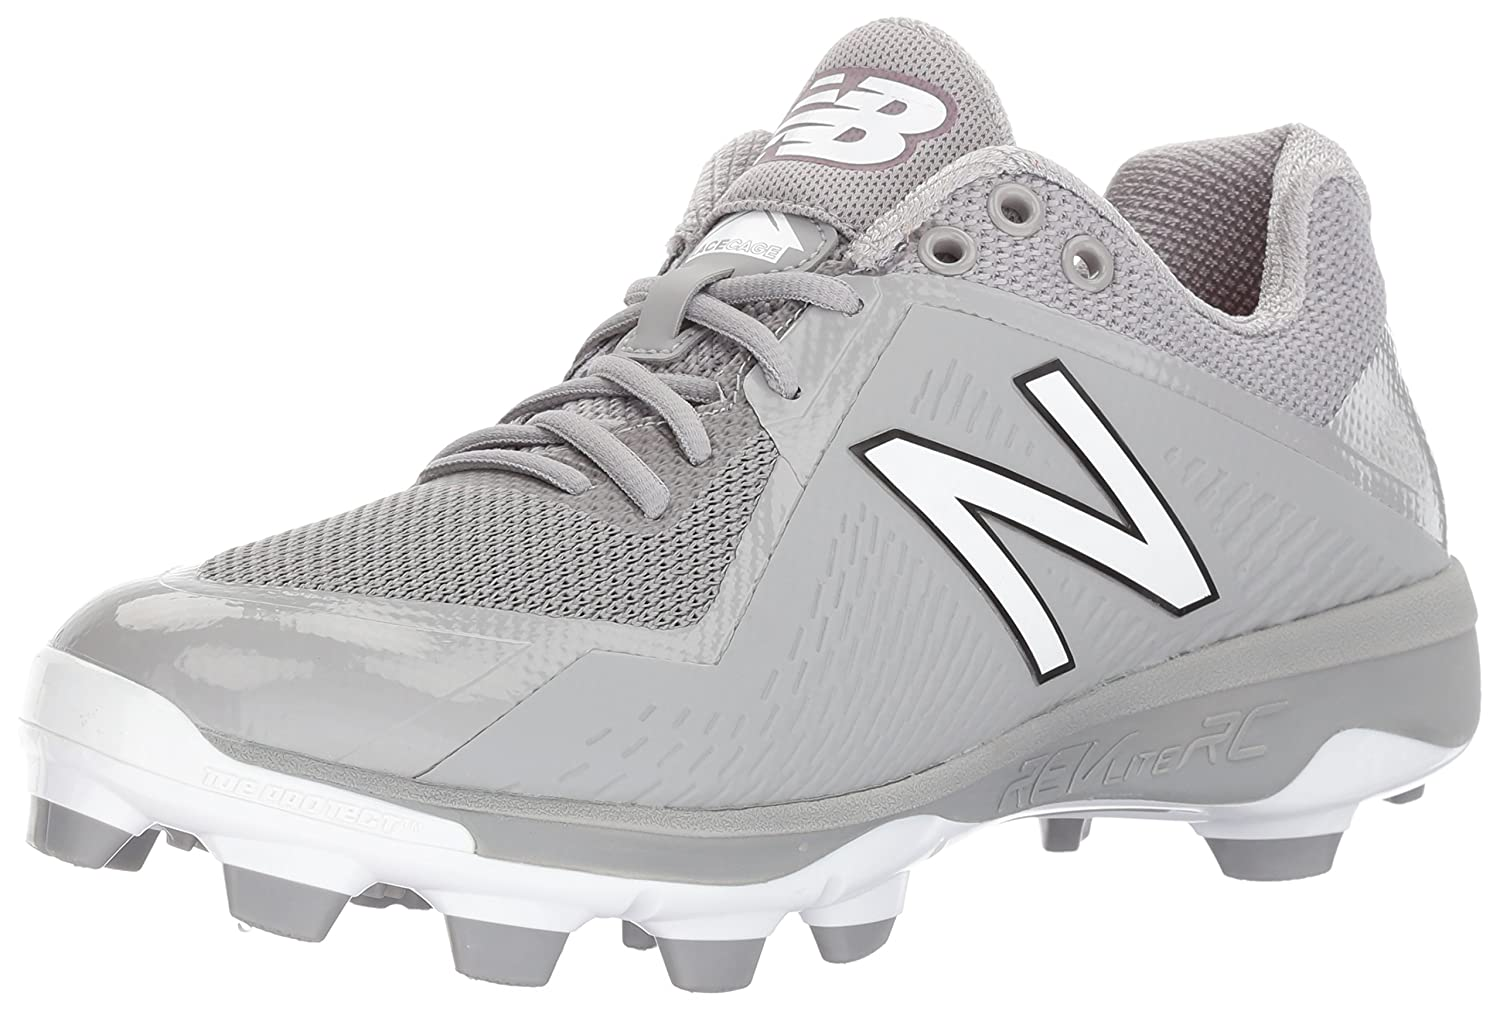 New Balance Men's PL4040v4 Molded Baseball schuhe, grau, 15 D US